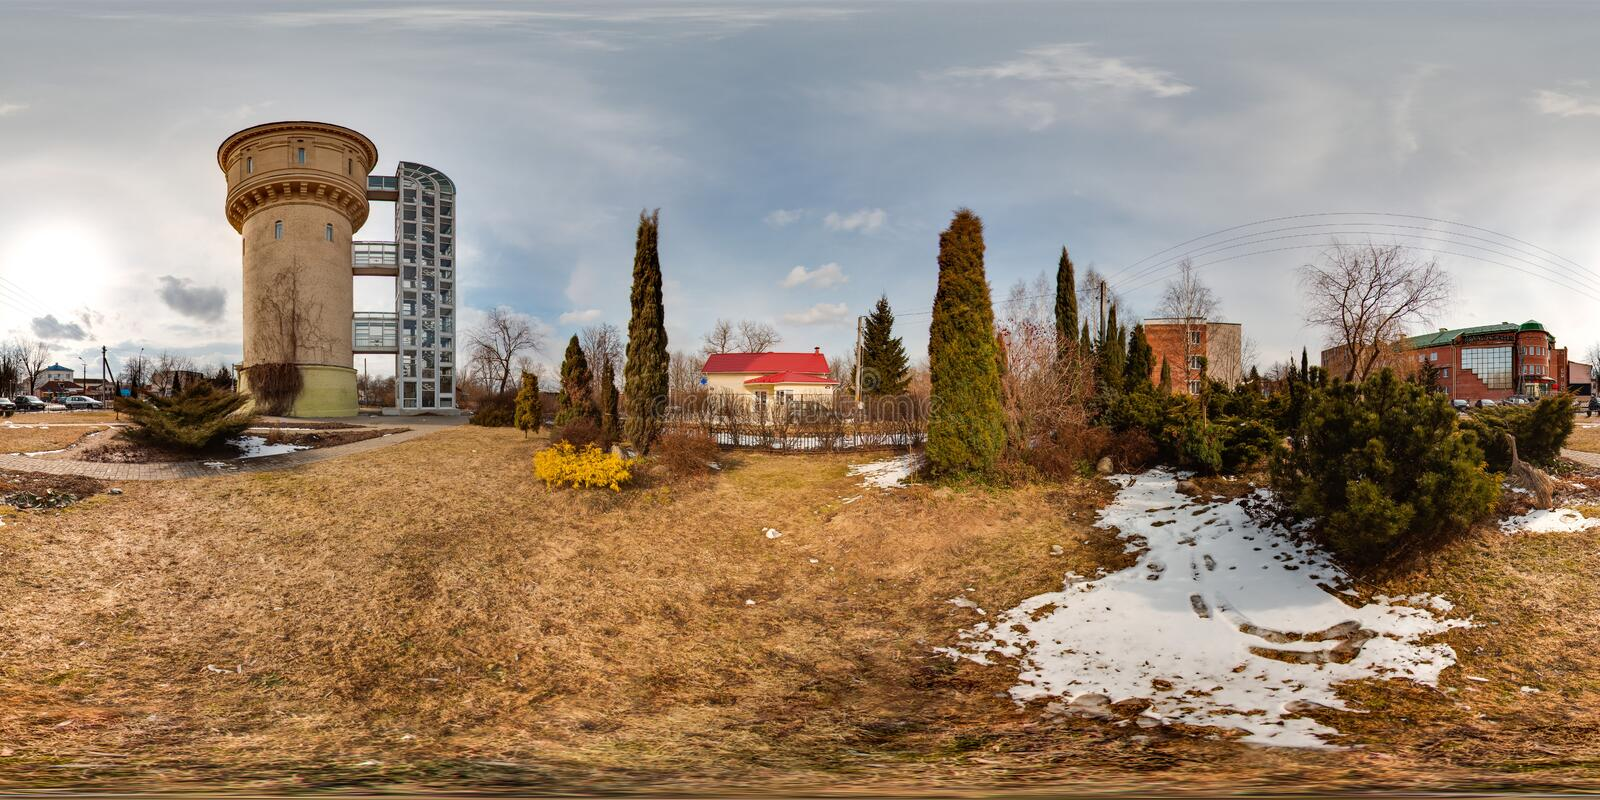 3D spherical panorama of landscape with snow, pines, water tower with 360 degree viewing angle. Ready for virtual reality in vr. stock image